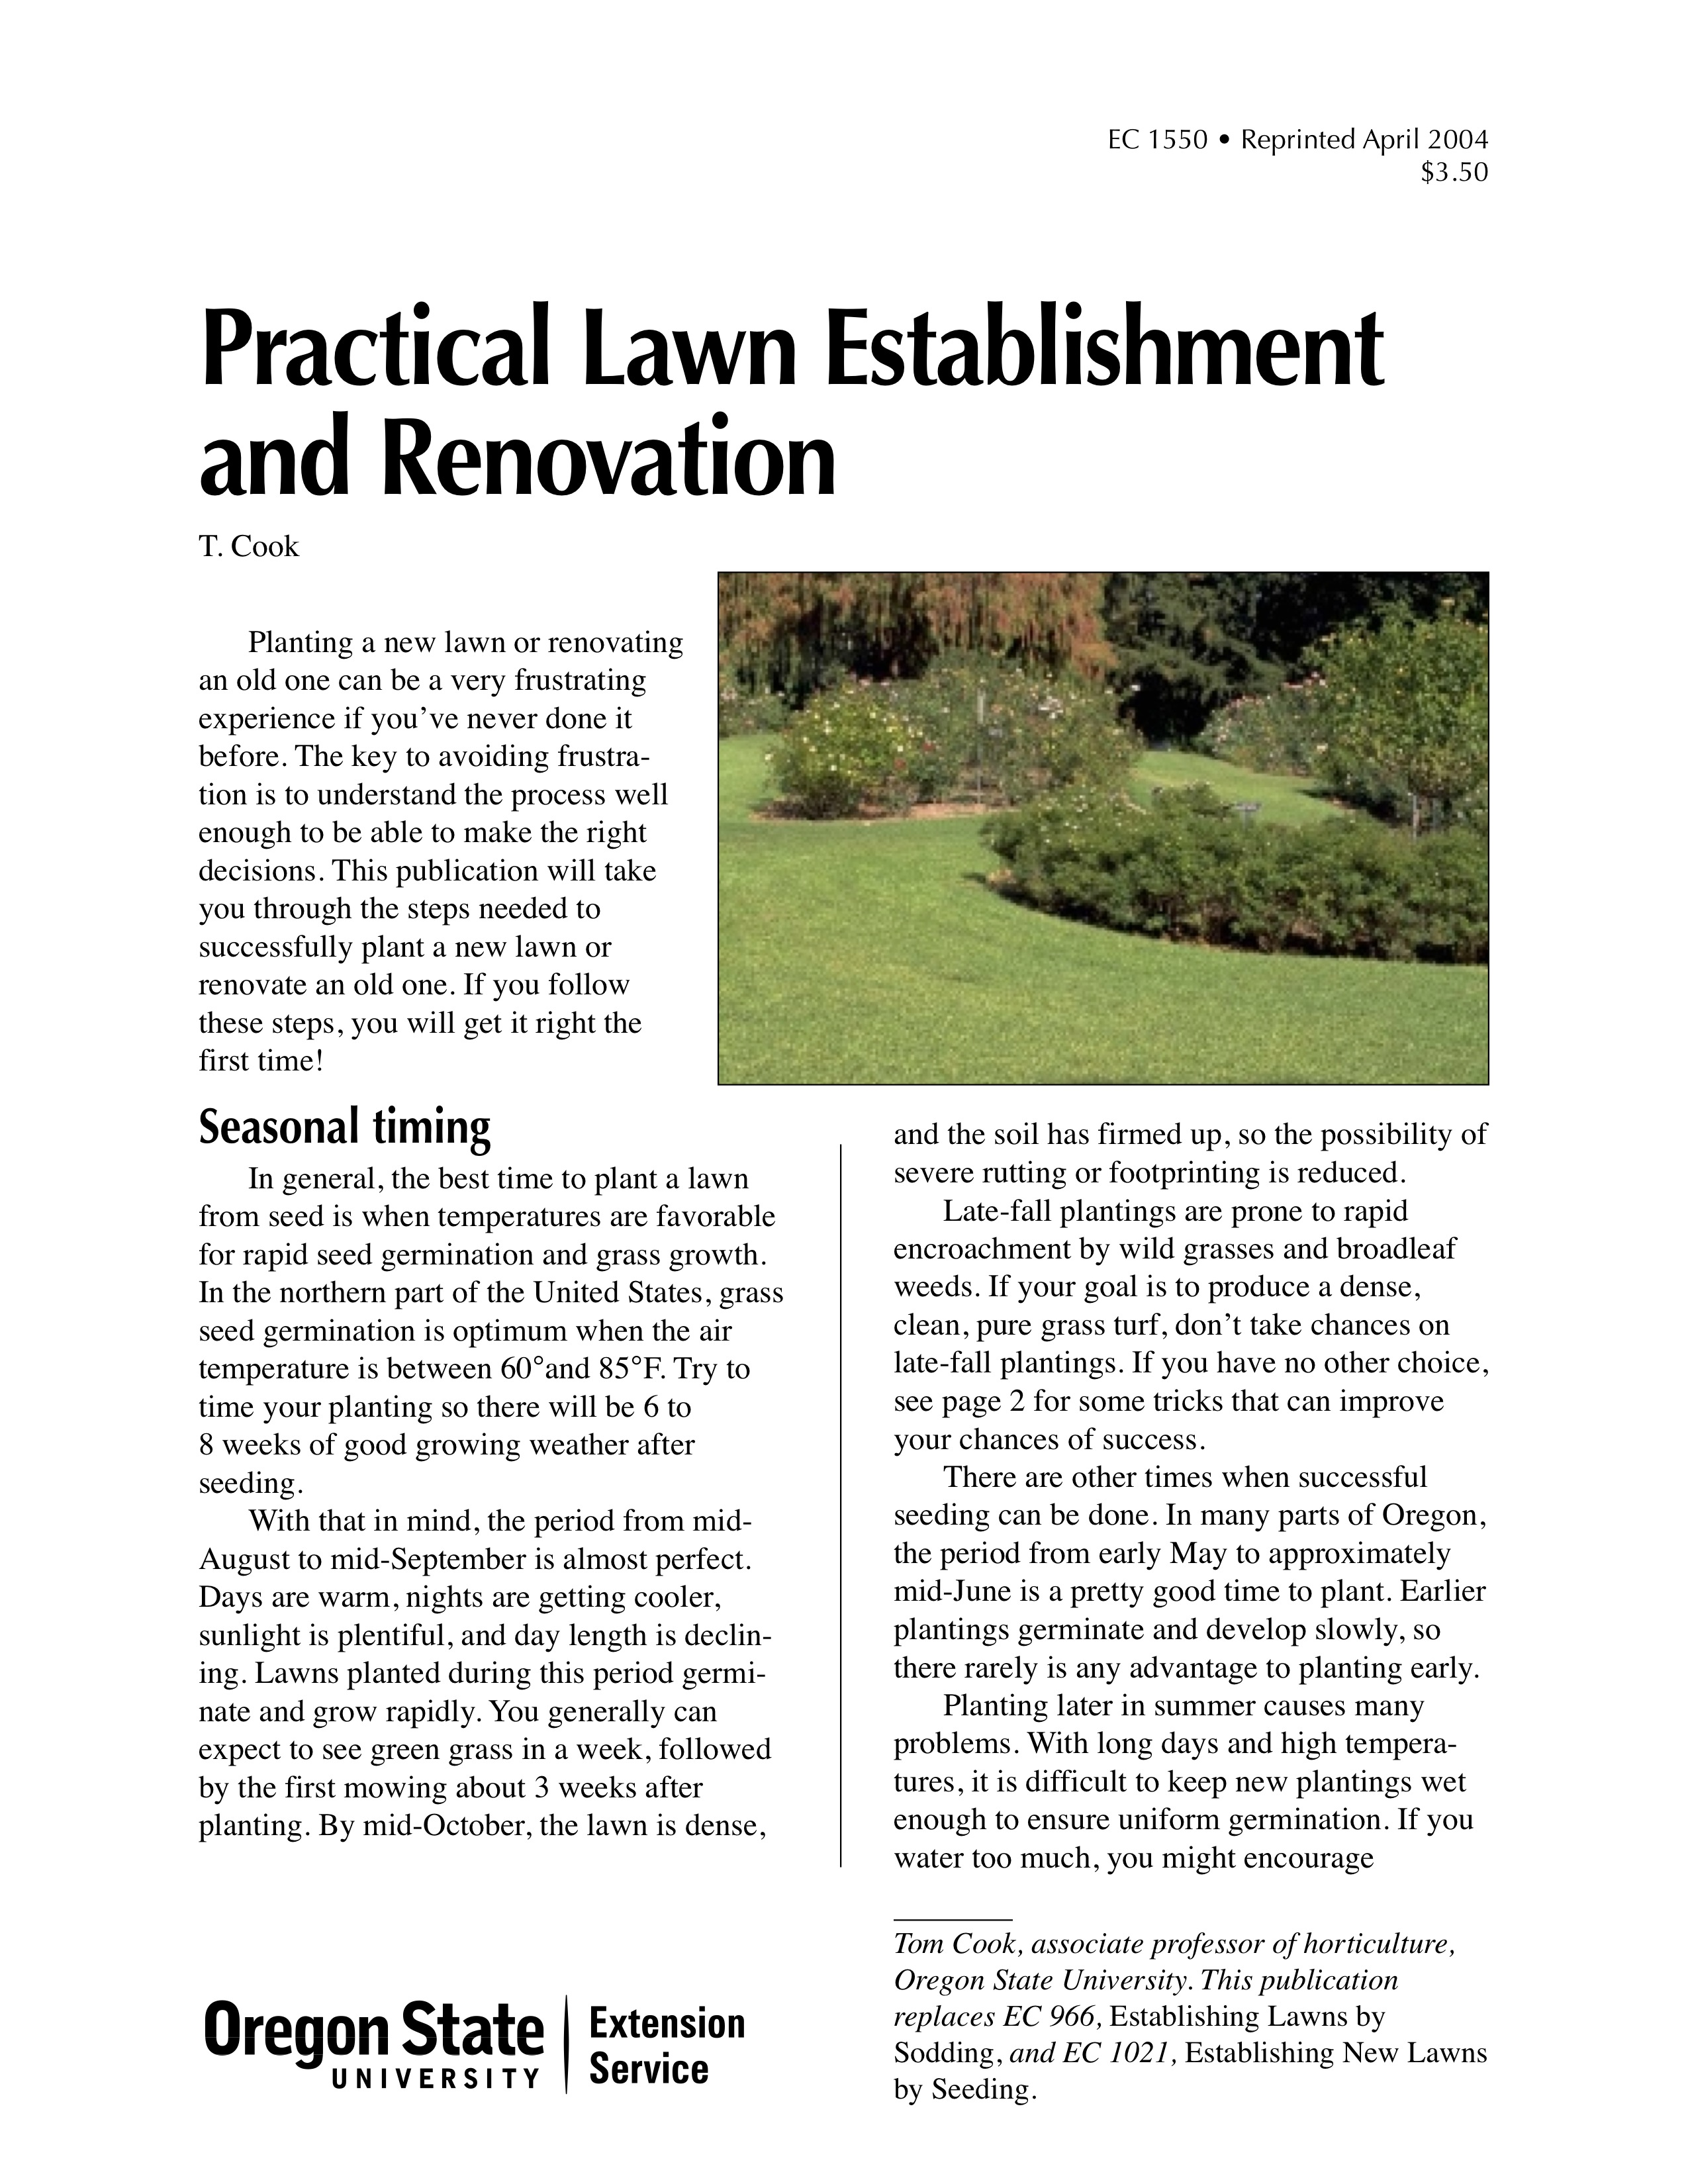 Practical Lawn Elishment And Renovation Osu Extension Catalog Oregon State University